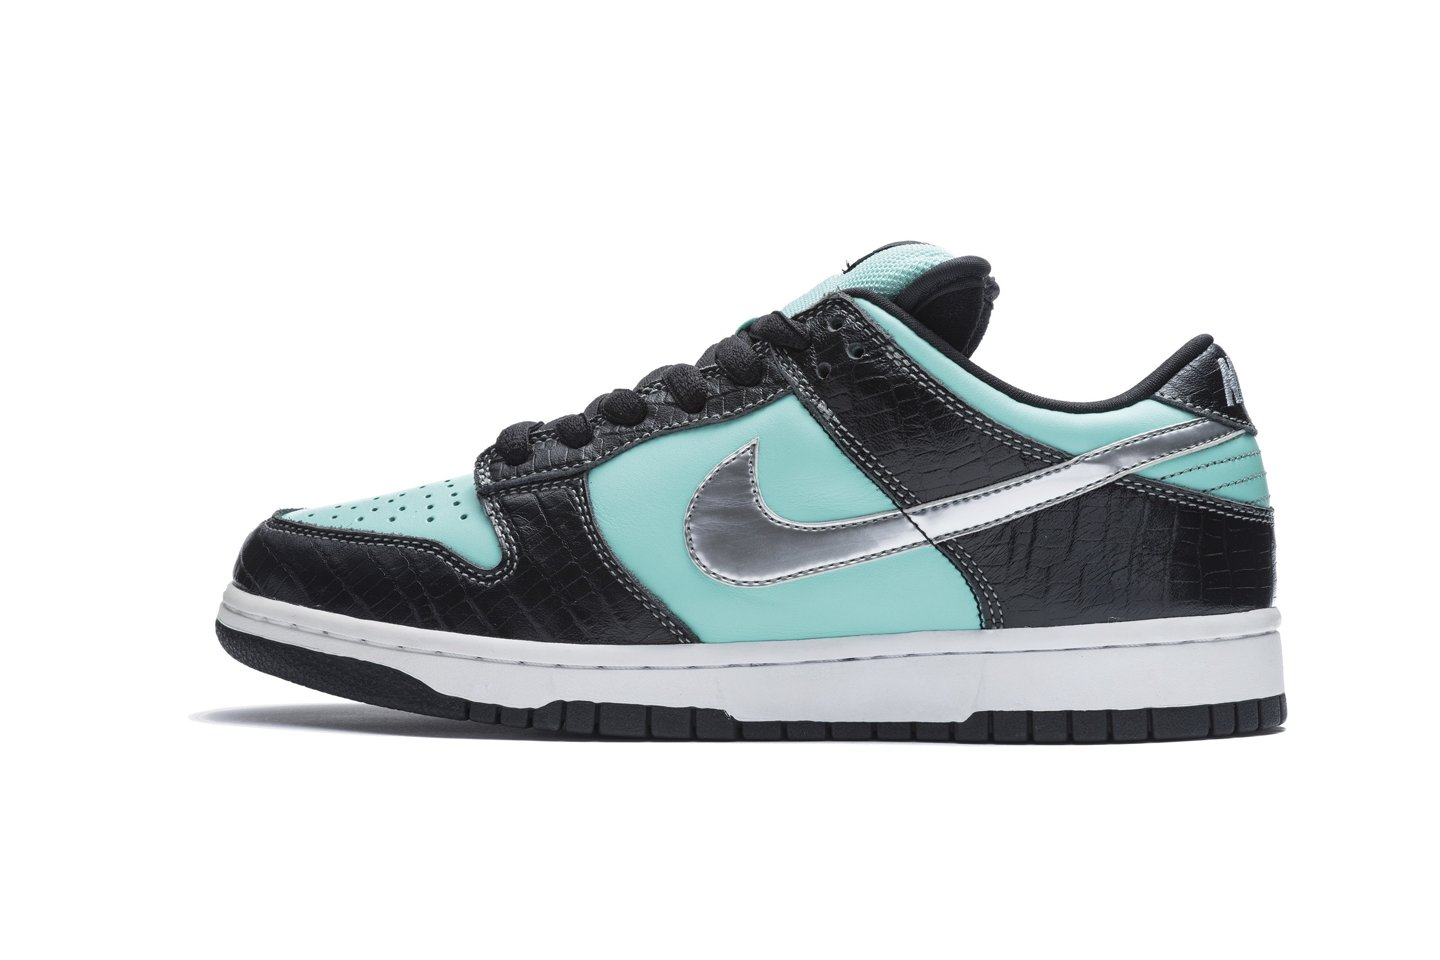 The Nike SB Tiffany Dunks Diamond